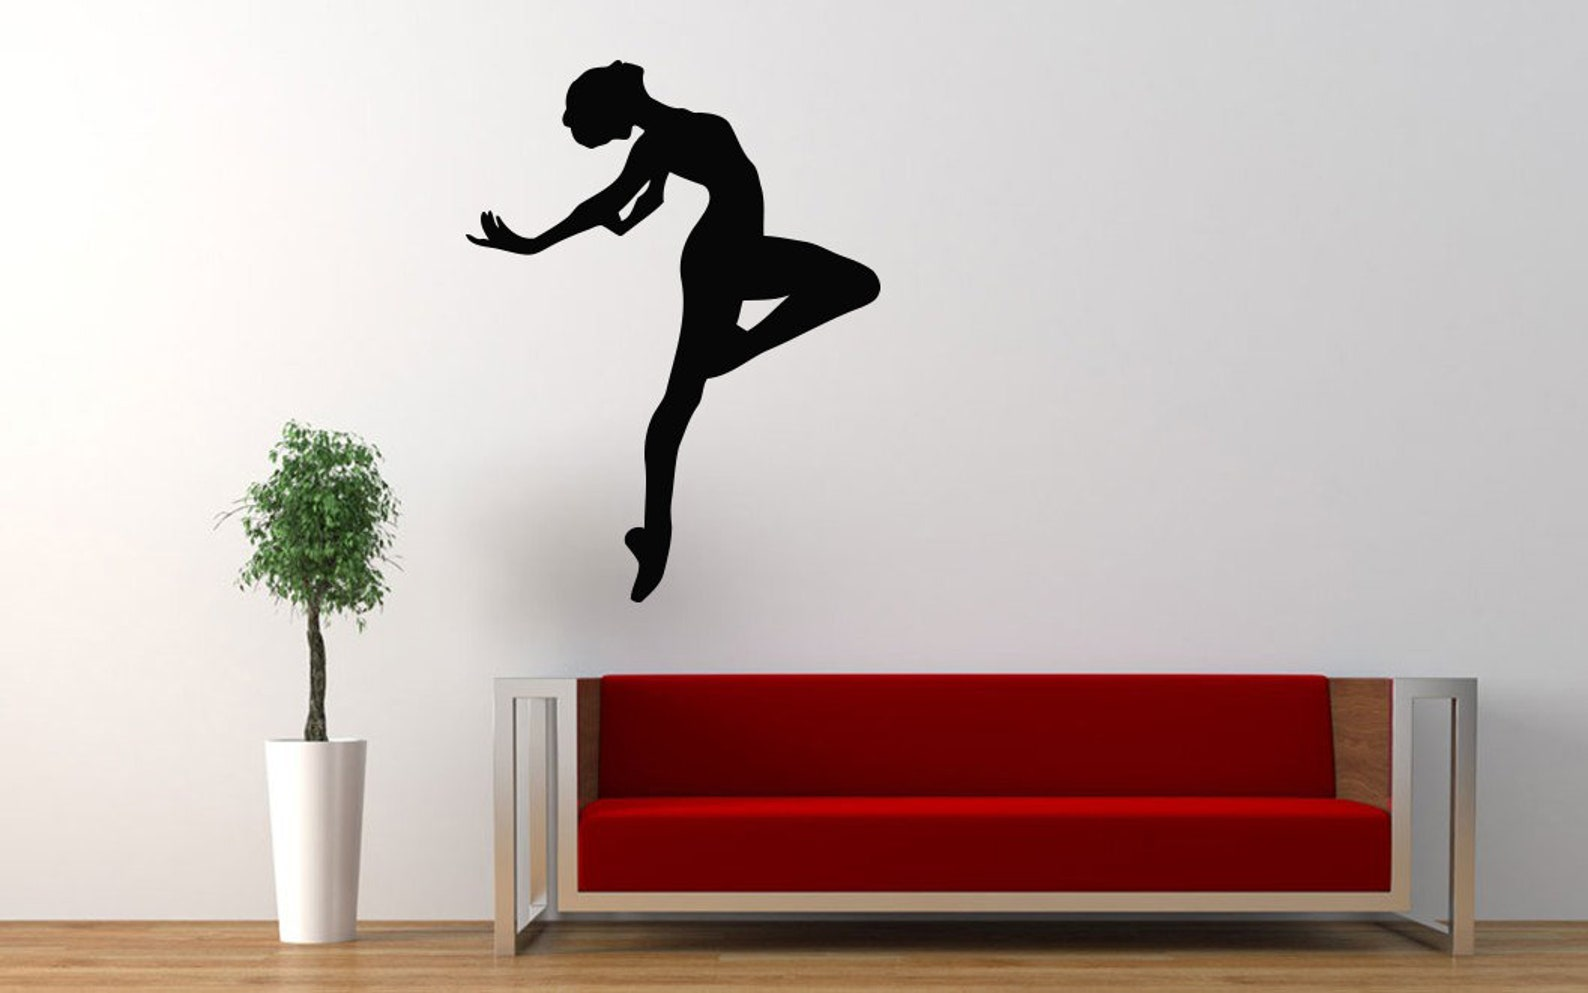 ballet, dance, ballet tutu, pointe shoes, ballet school wall decal window sticker handmade 1602